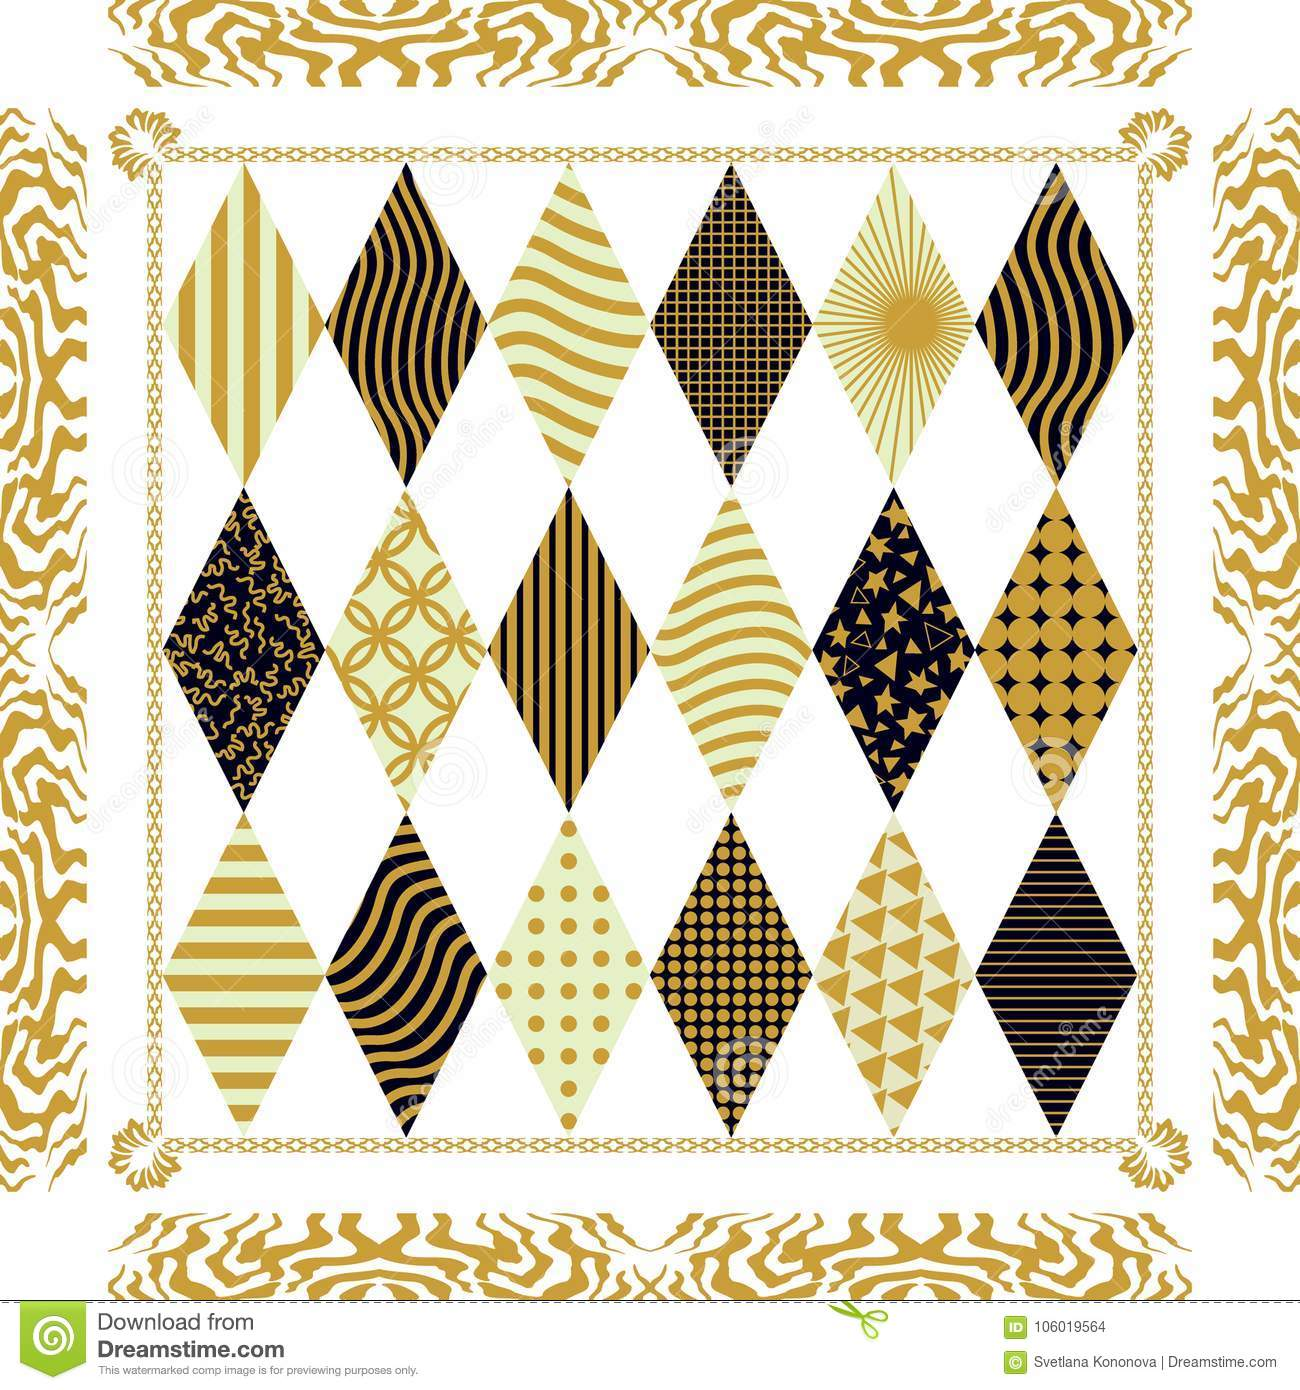 df90c958e34 White and golden silk scarf with linear geometric print and vintage frame.